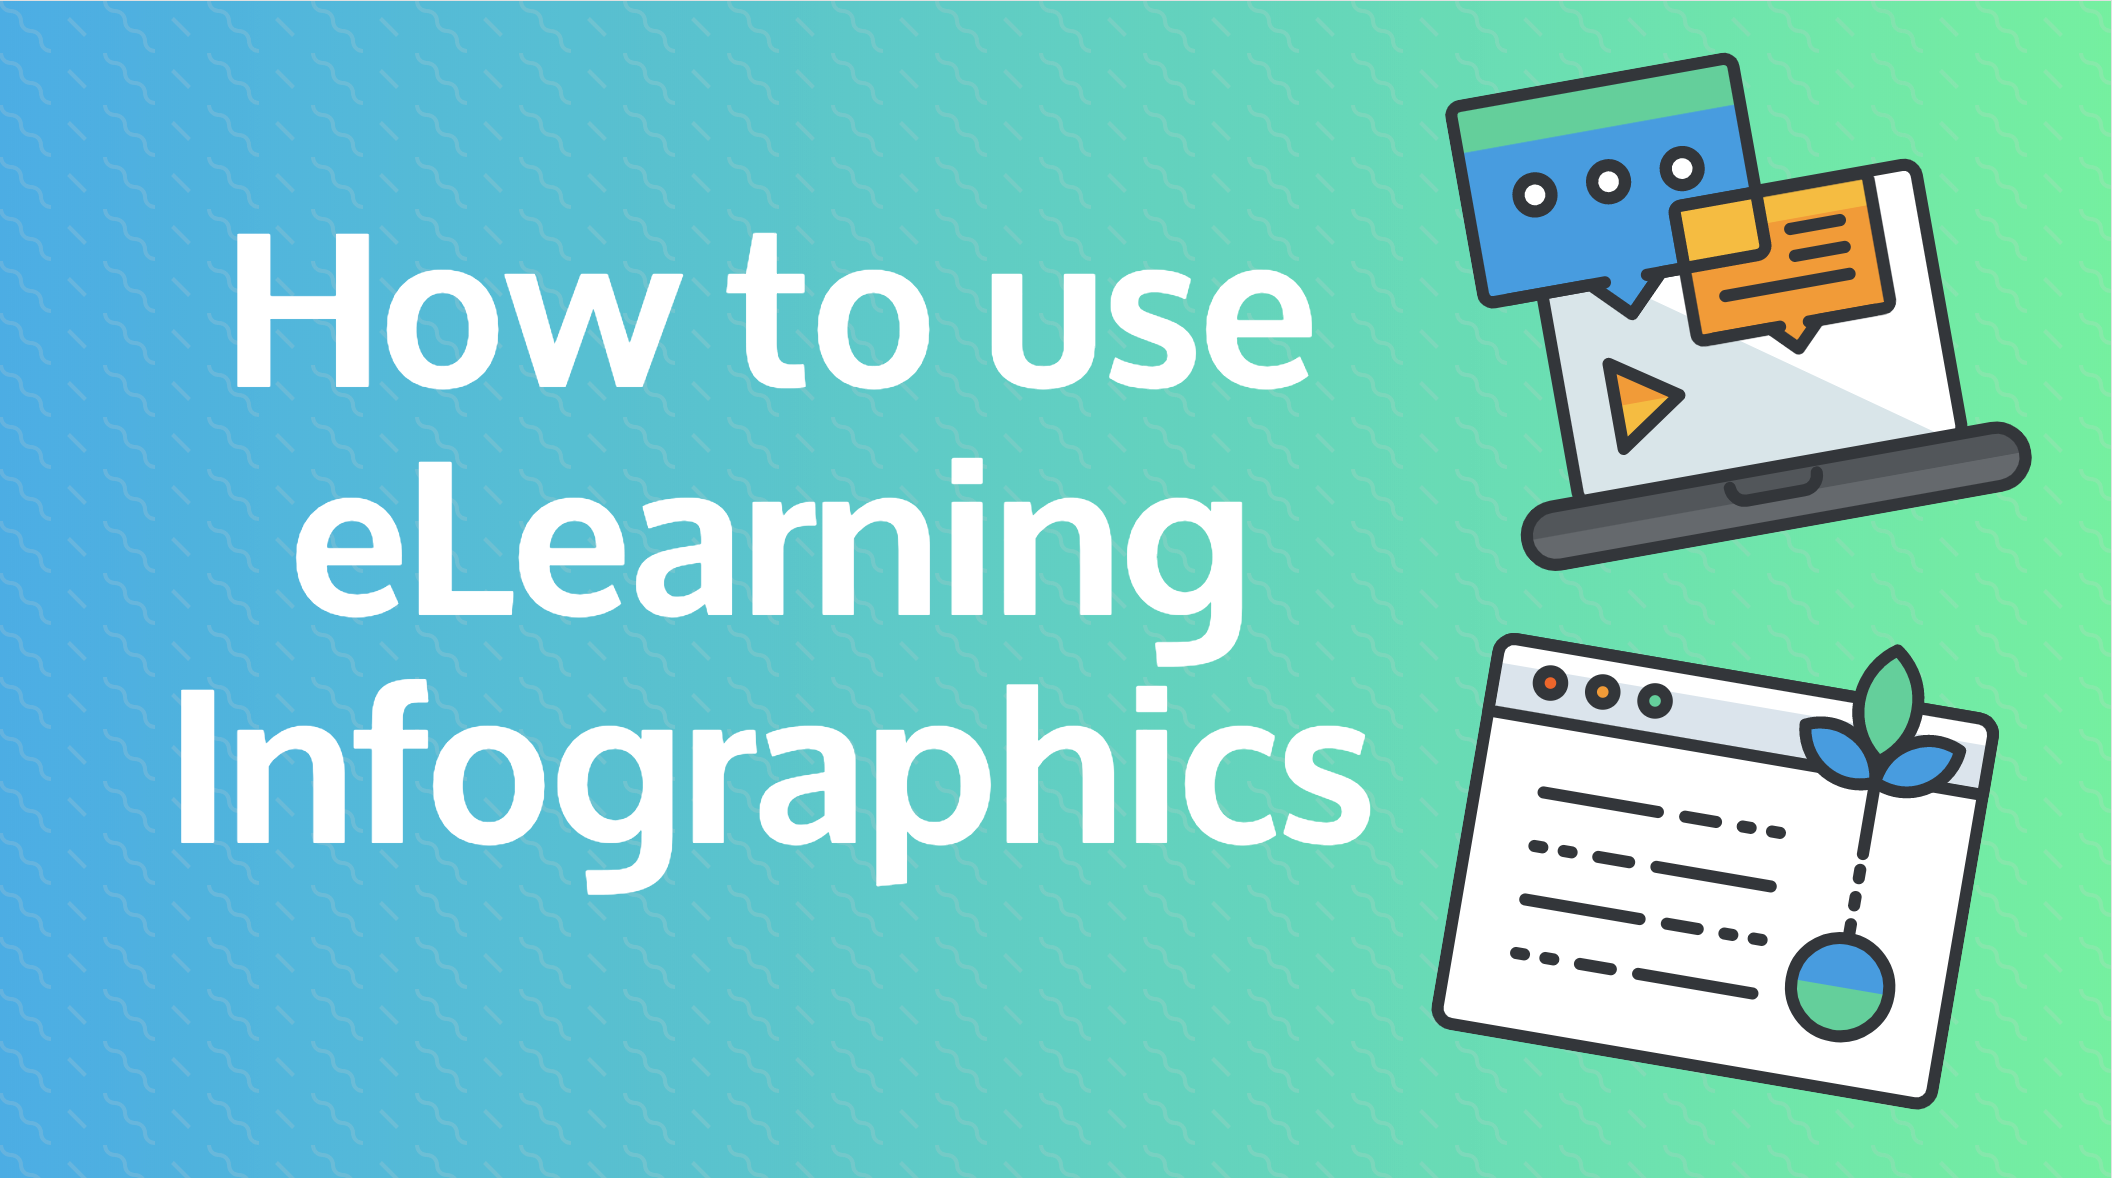 How to use eLearning infographics header